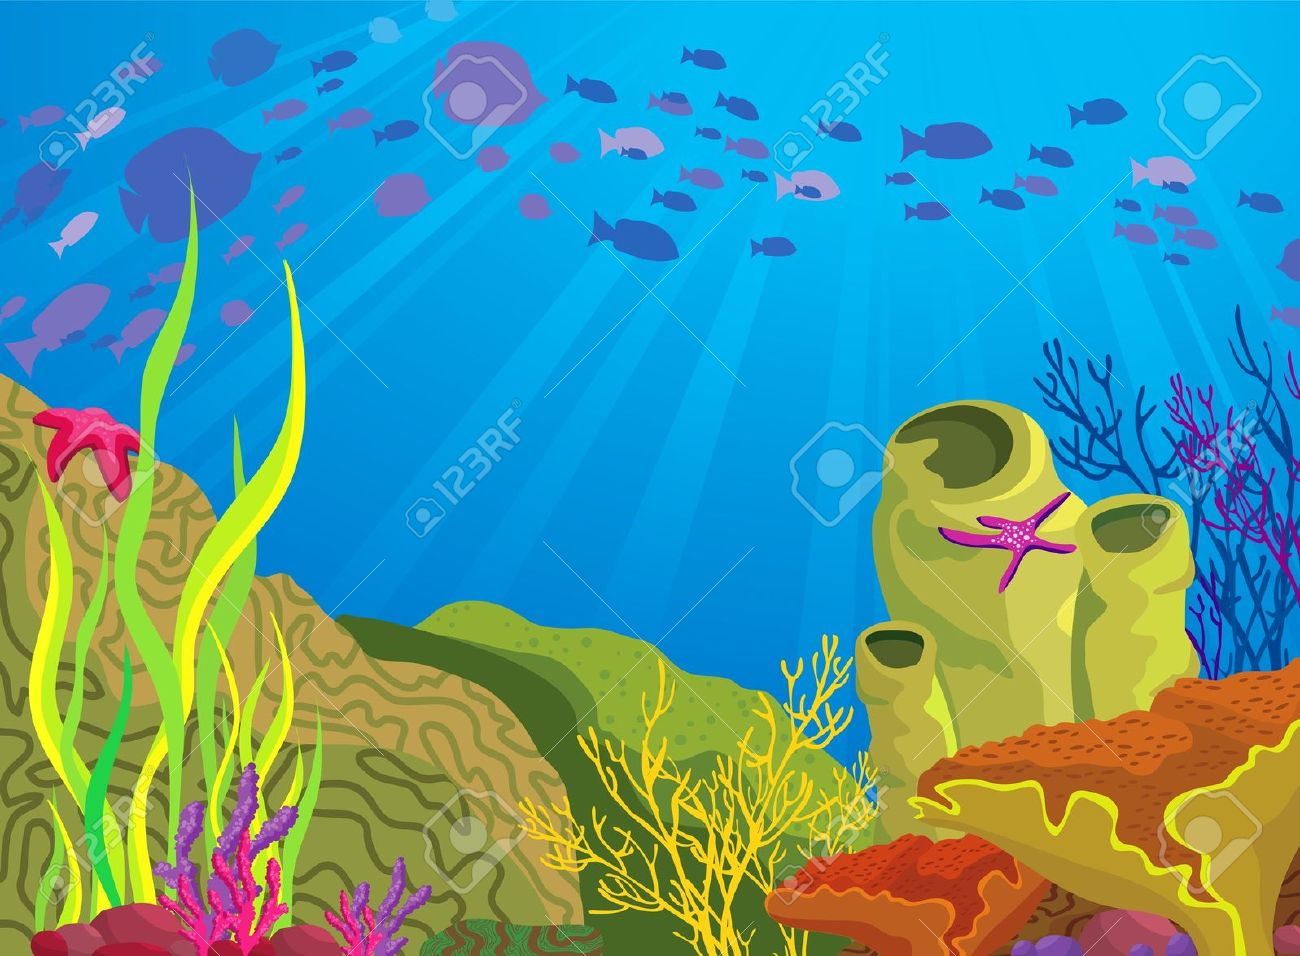 Coral reef clipart #1